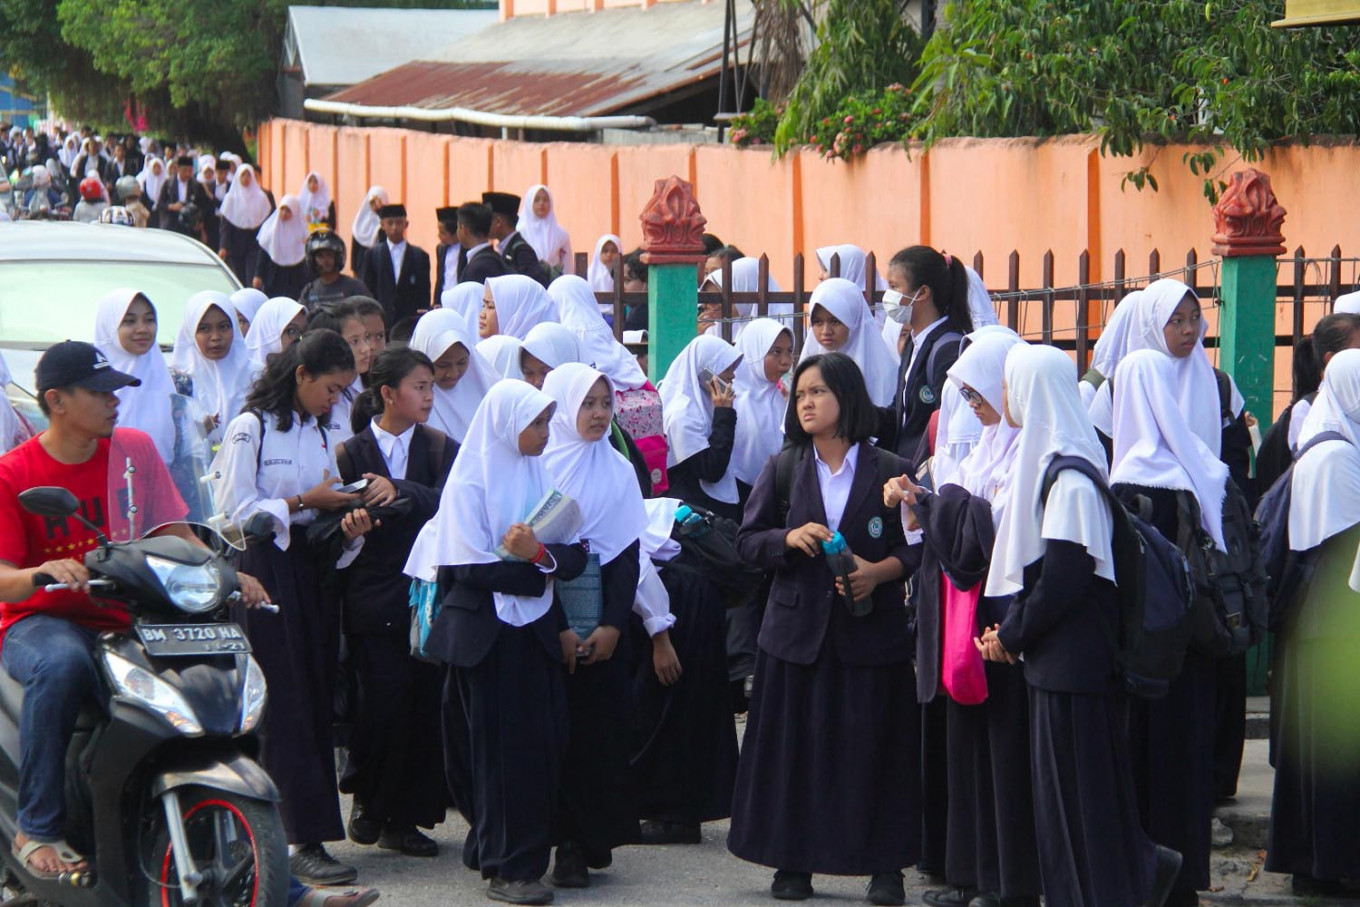 From Sumatra to Sulawesi, schools closed, social distancing measures applied